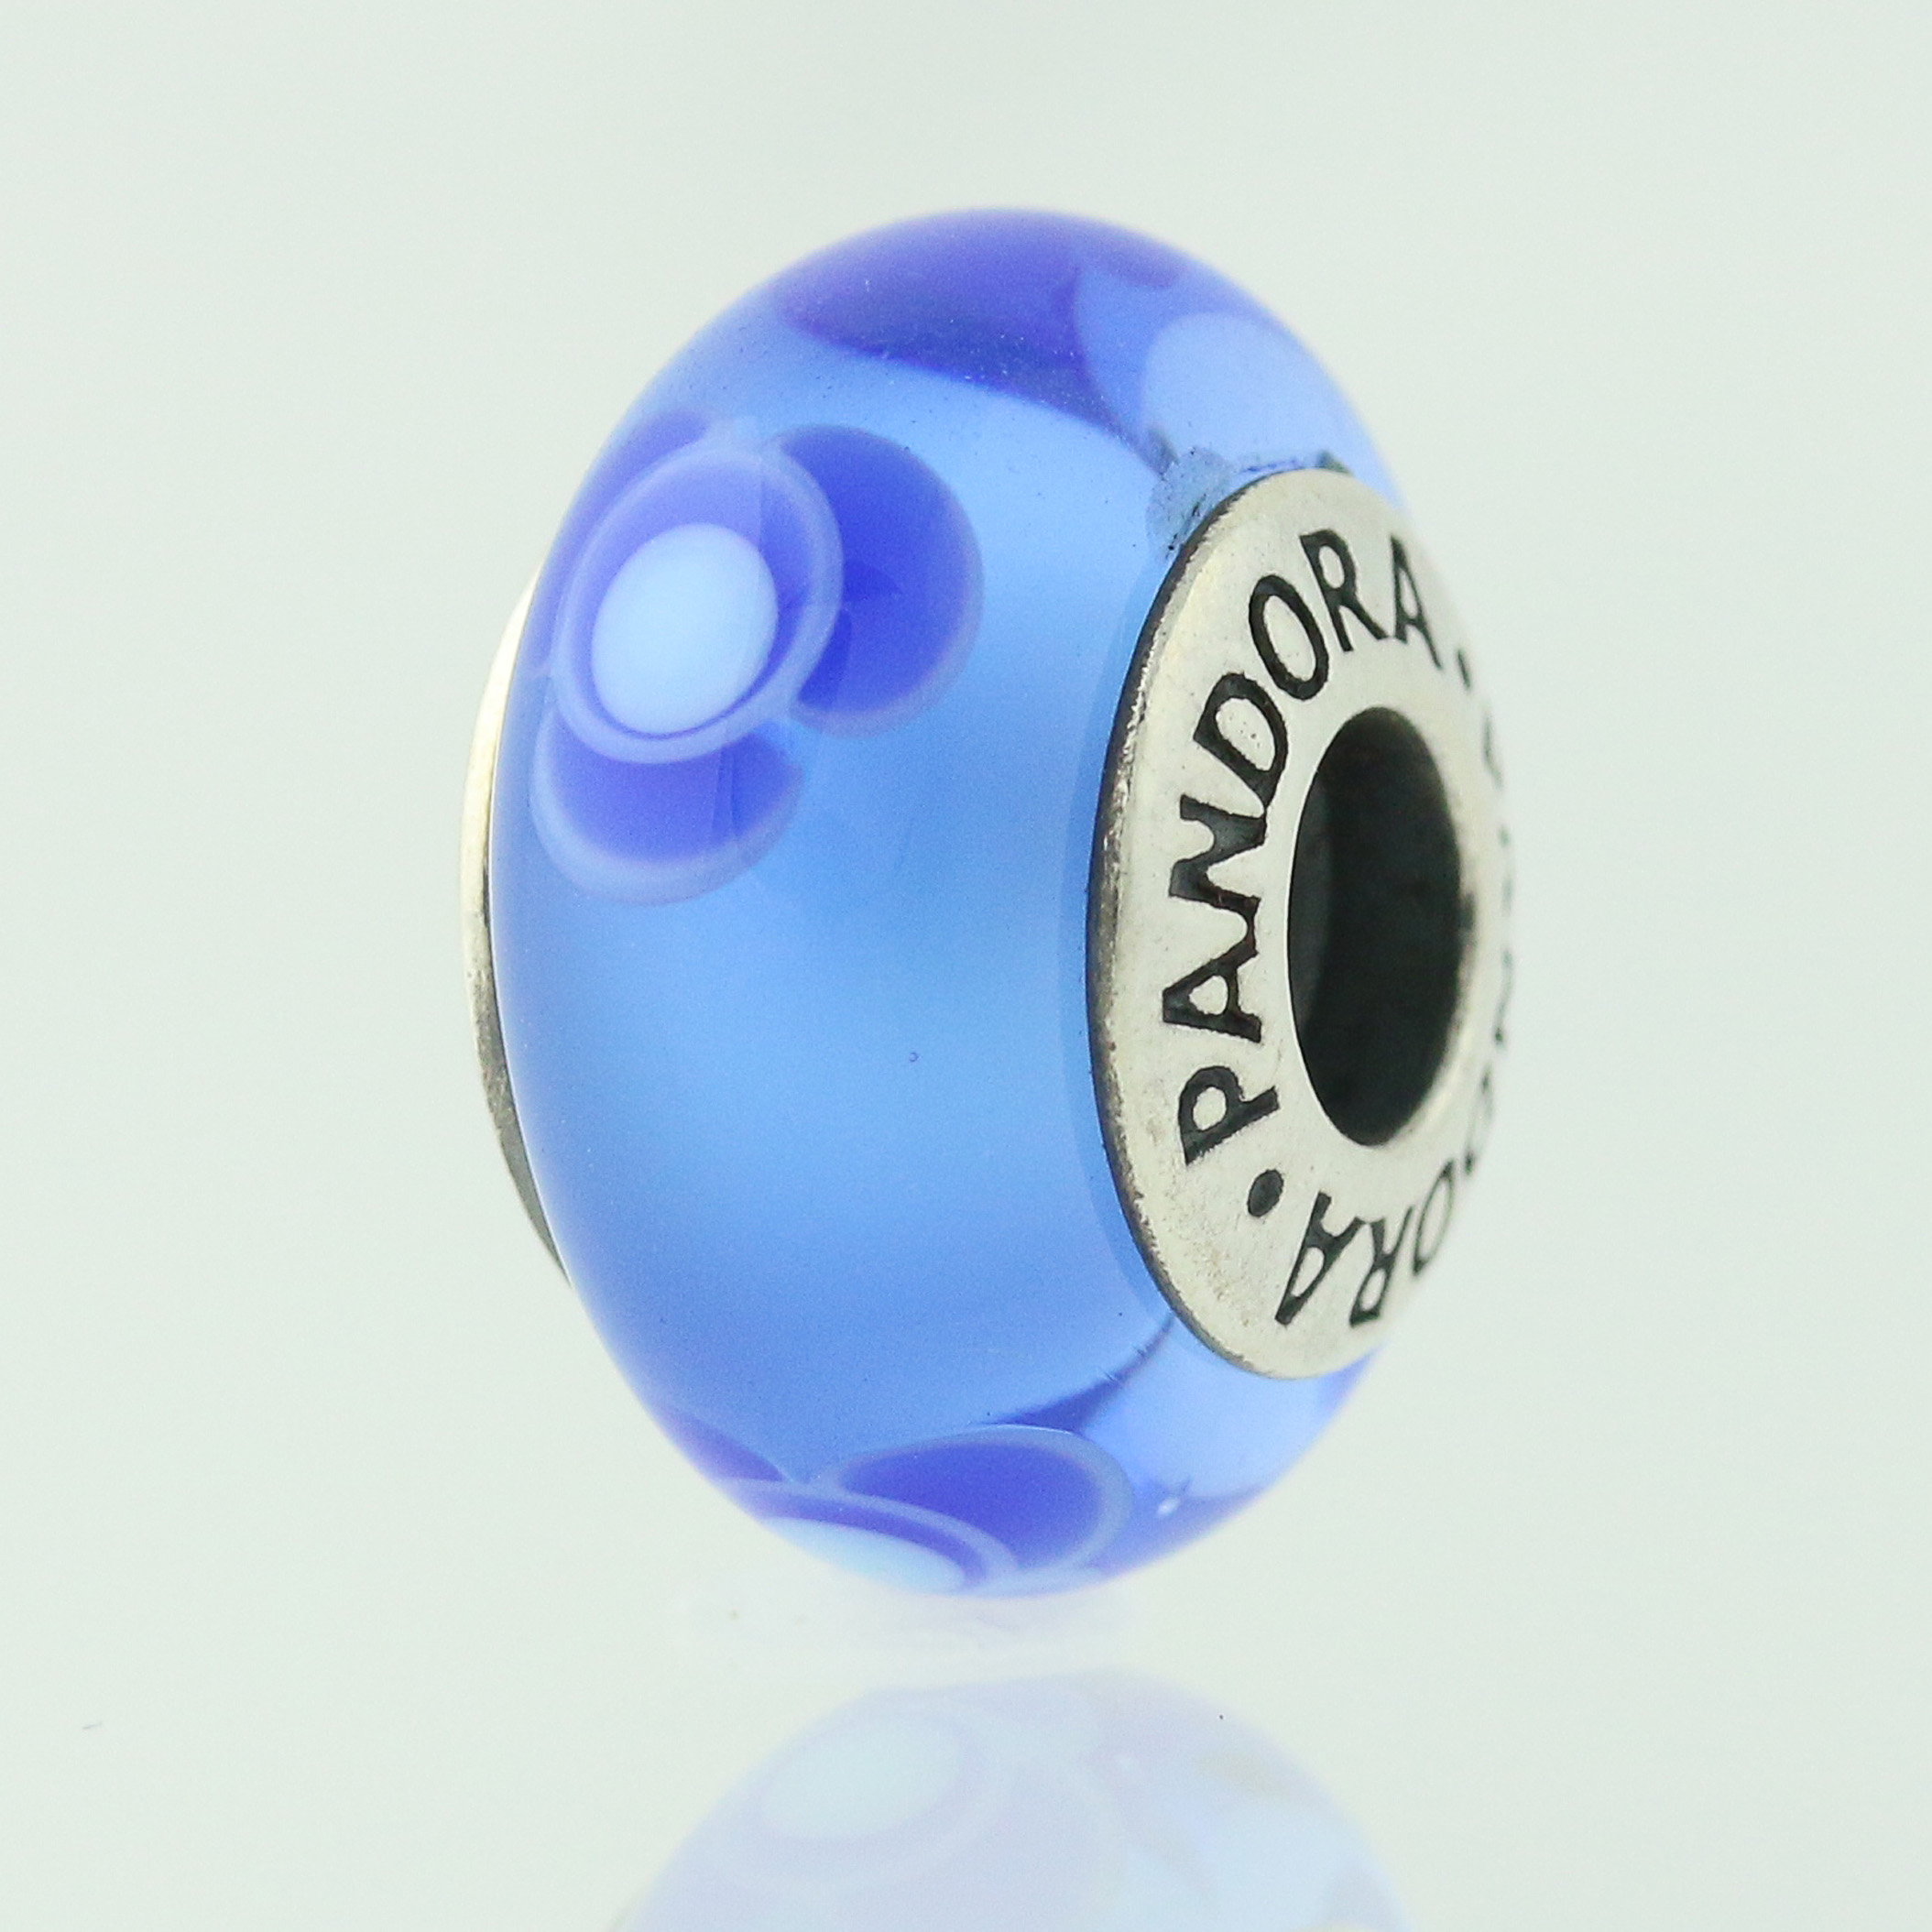 New pandora bead charm sterling murano glass 790644 blue flowers for click thumbnails to enlarge izmirmasajfo